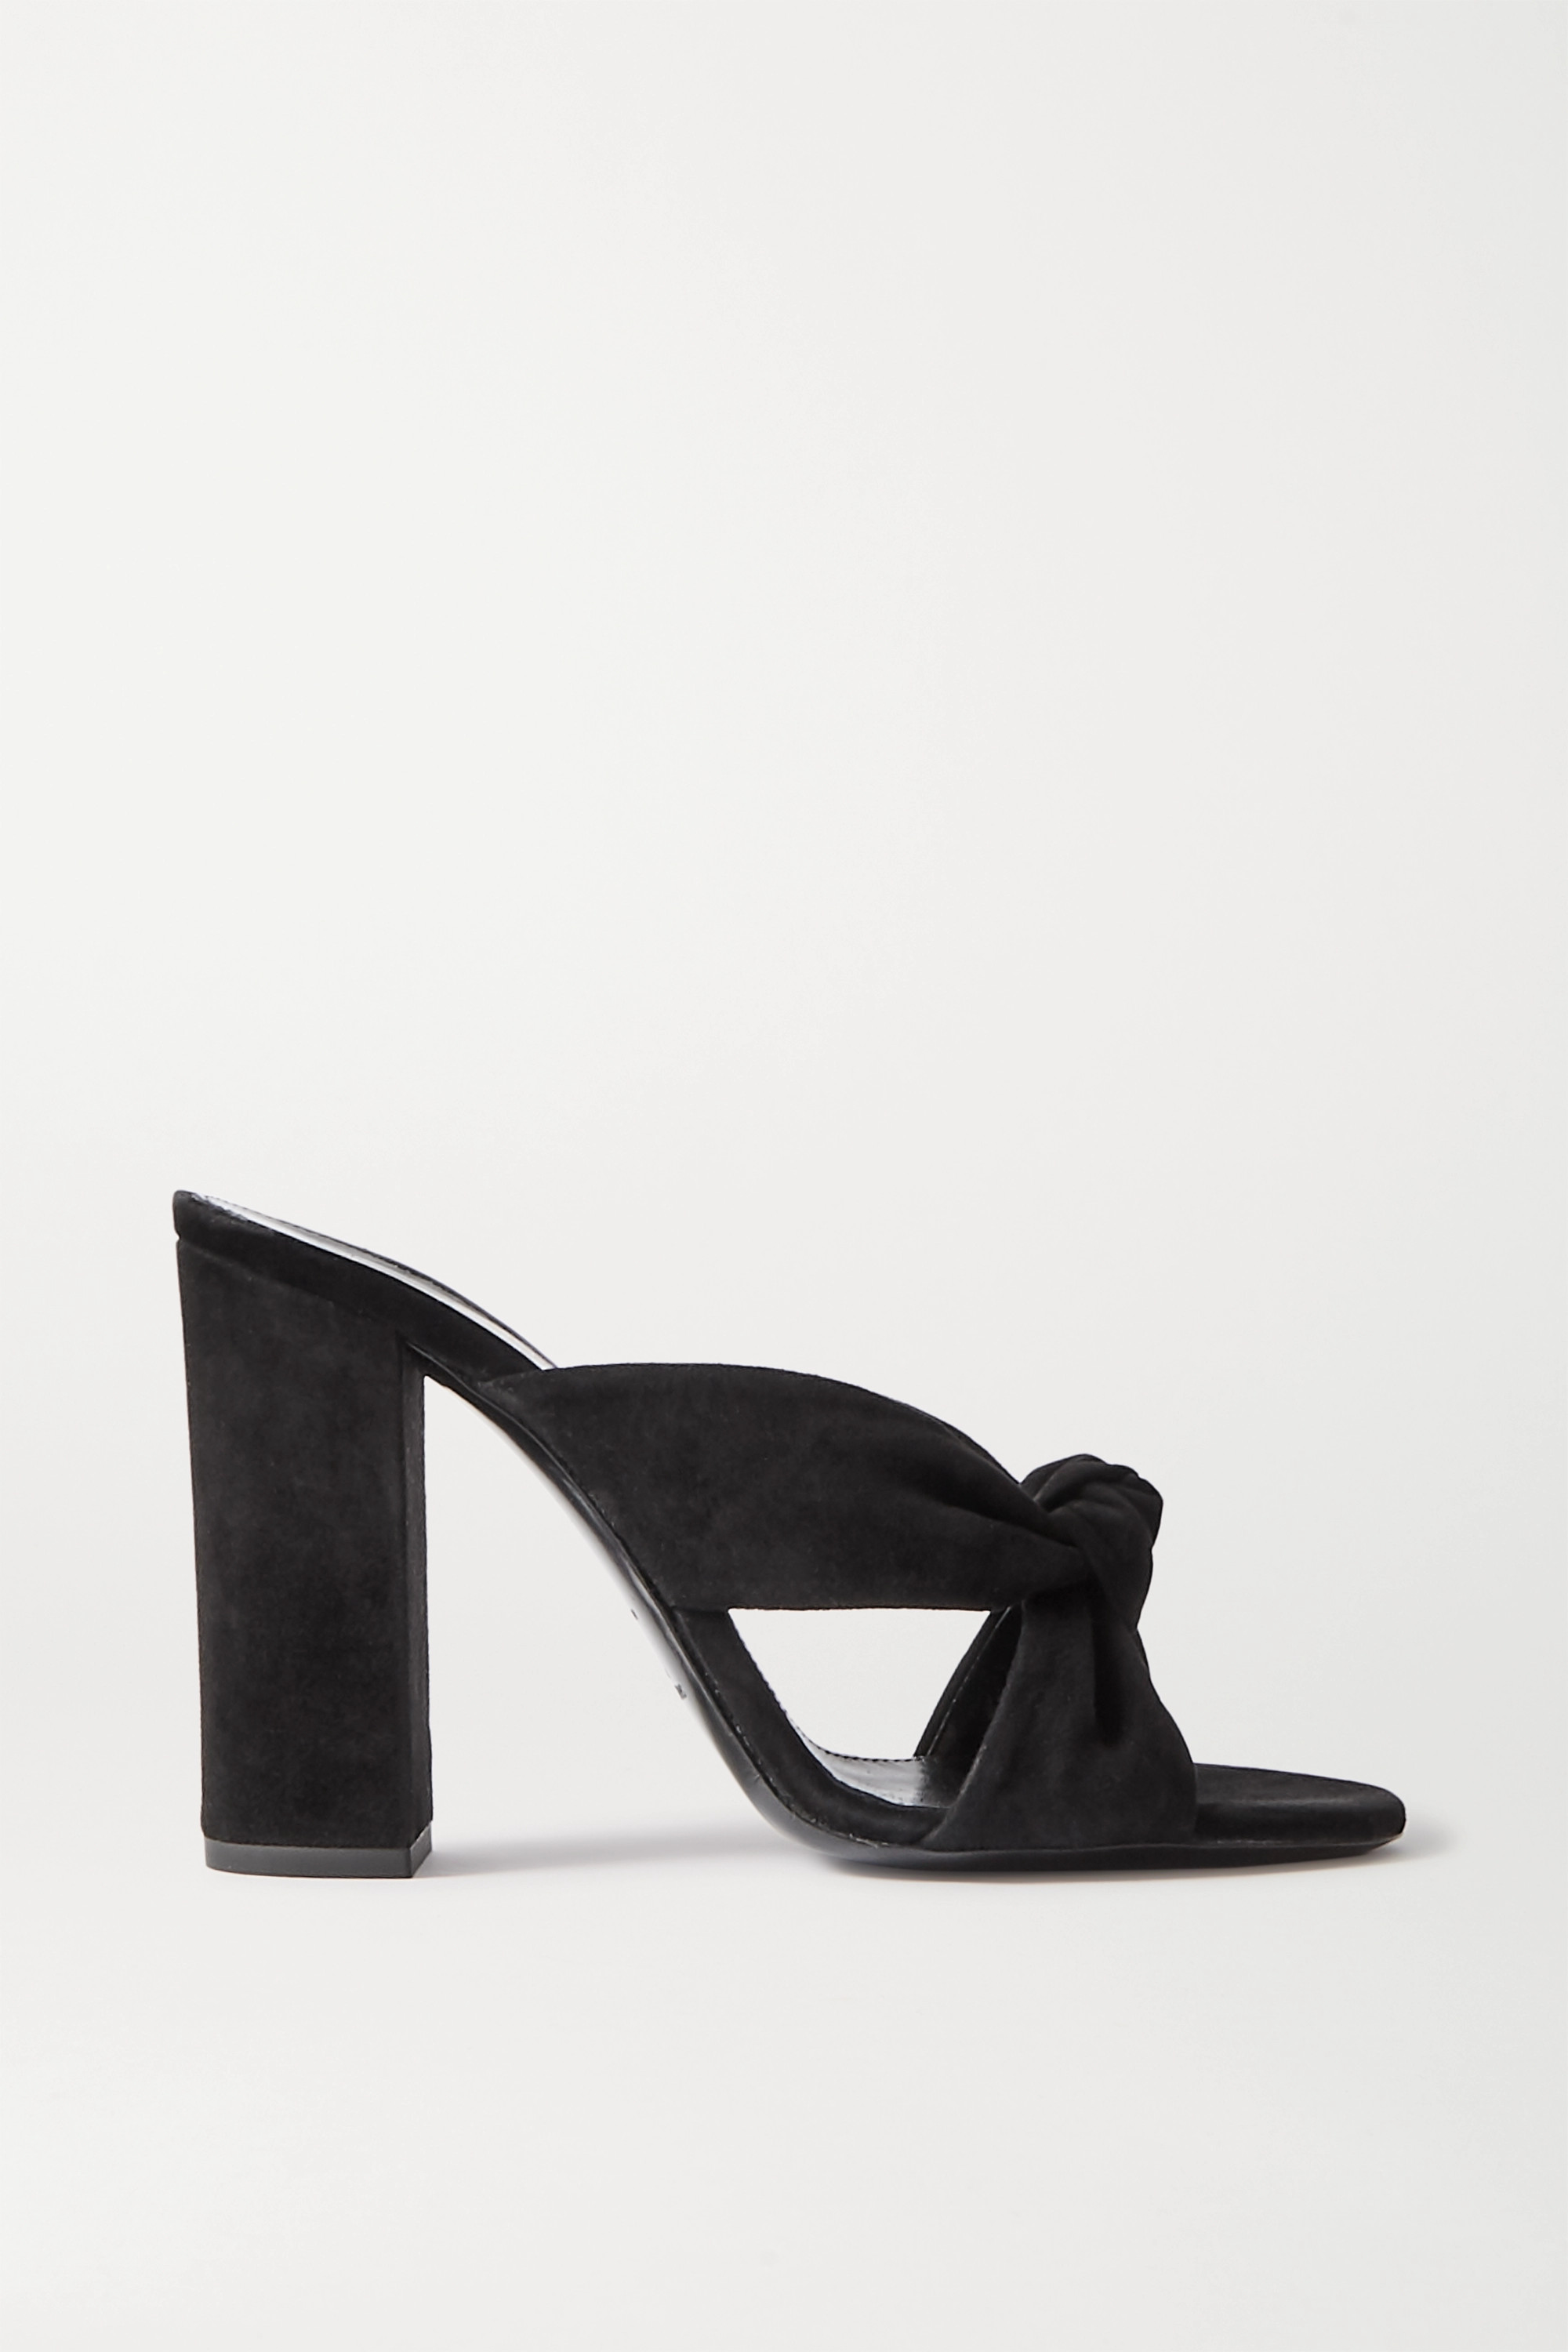 SAINT LAURENT Bianca knotted suede mules